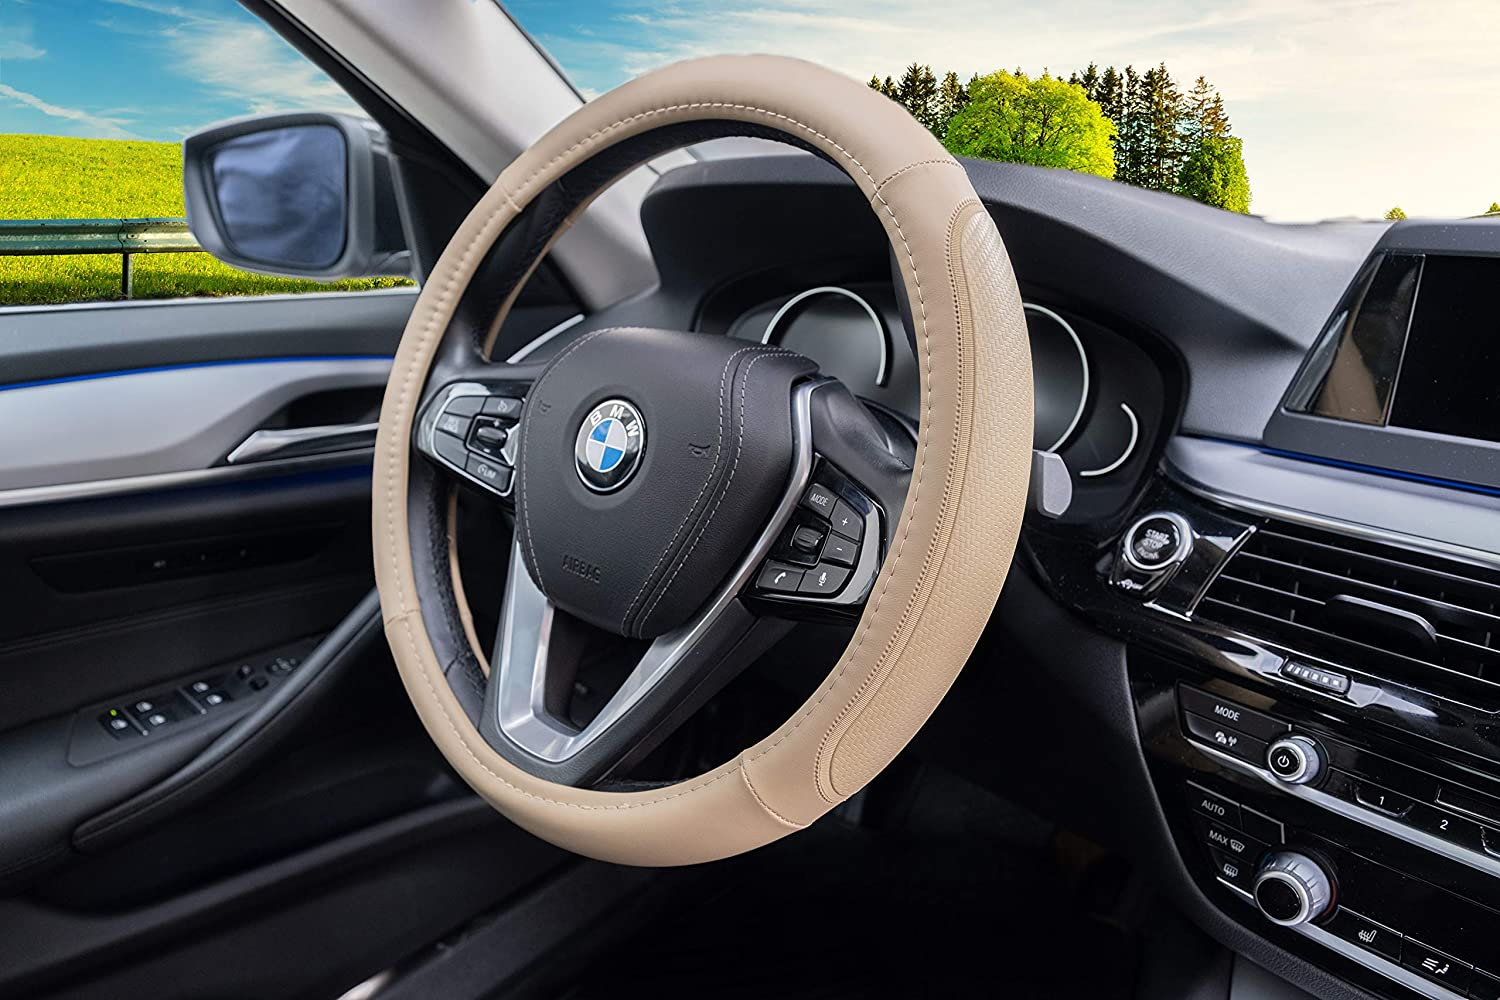 Magnelex Microfiber Leather Steering Wheel Cover Heat Resistant Anti-Slip Car Wheel Wrap Black Compatible with Most Makes and Models of Cars and Trucks with 14.5 to 15 Inch Steering Wheels